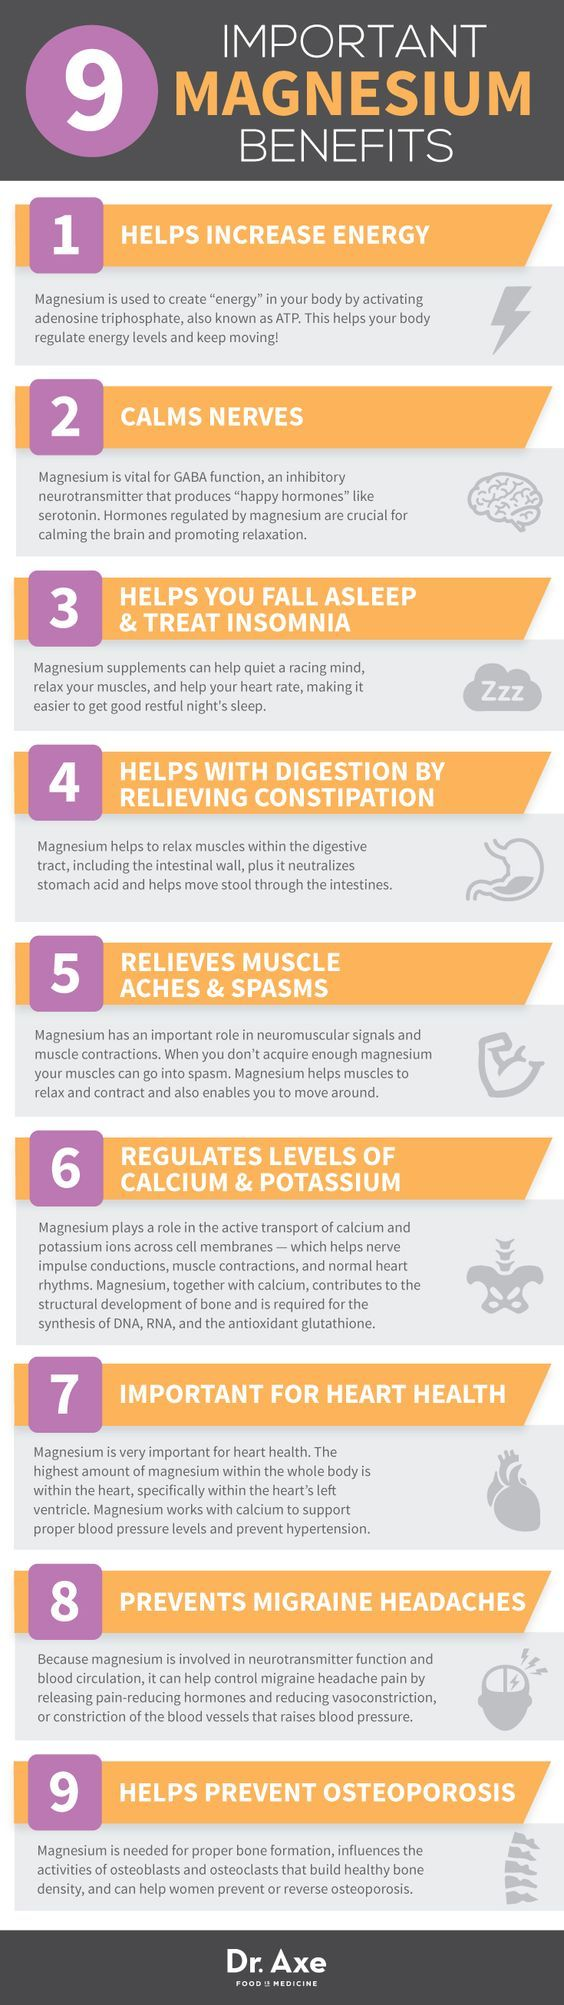 9 Important Magnesium Benefits. It's a good idea to consider taking magnesium supplements and eating magnesium-rich foods regularly.